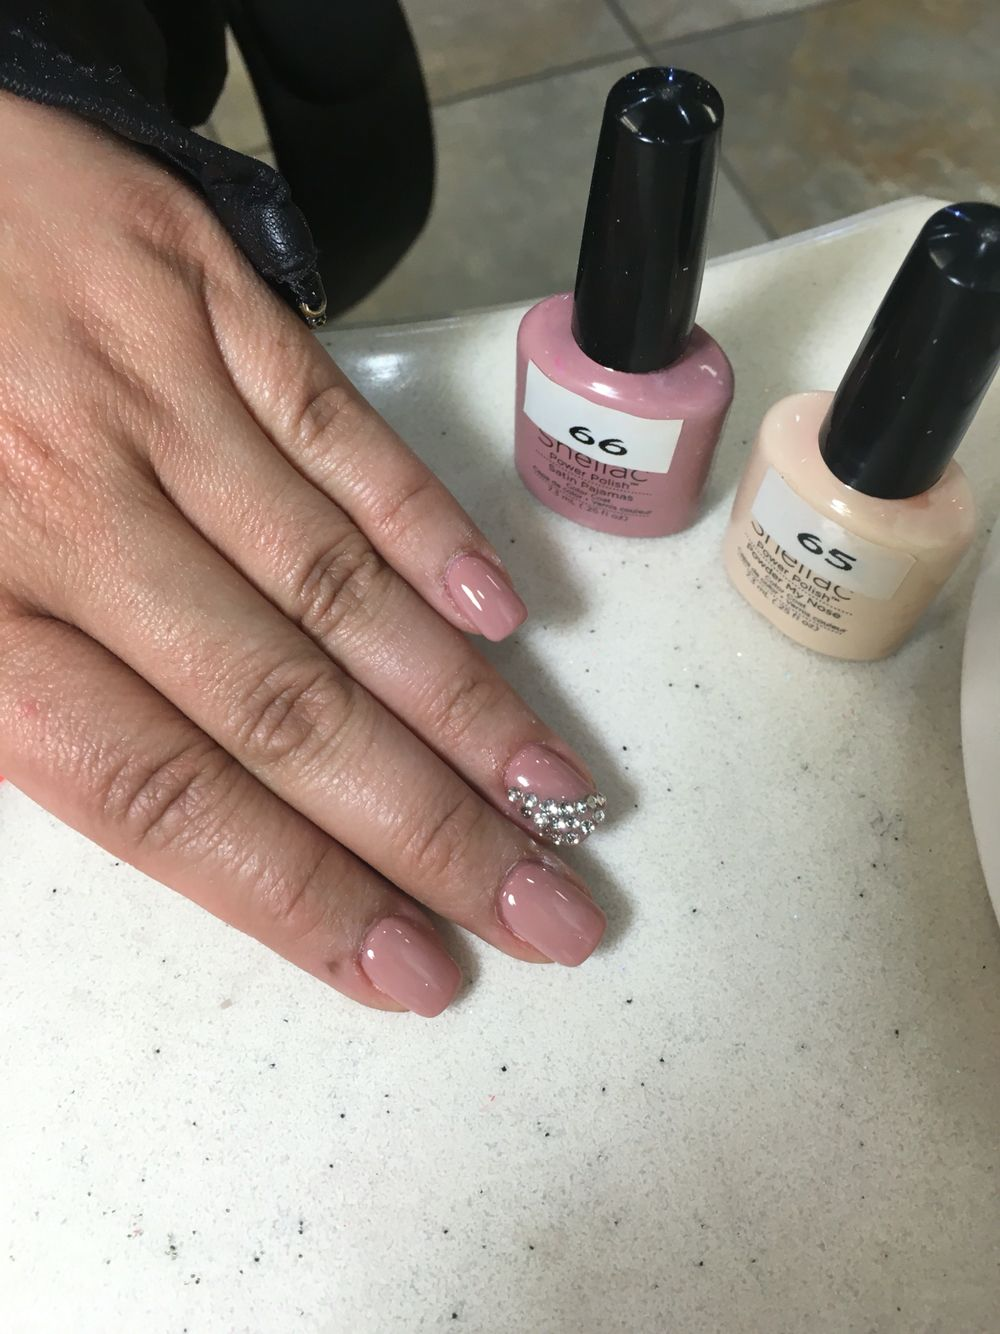 Satin Pajamas with Powder My Nose Shellac on top with a bit of bling ...